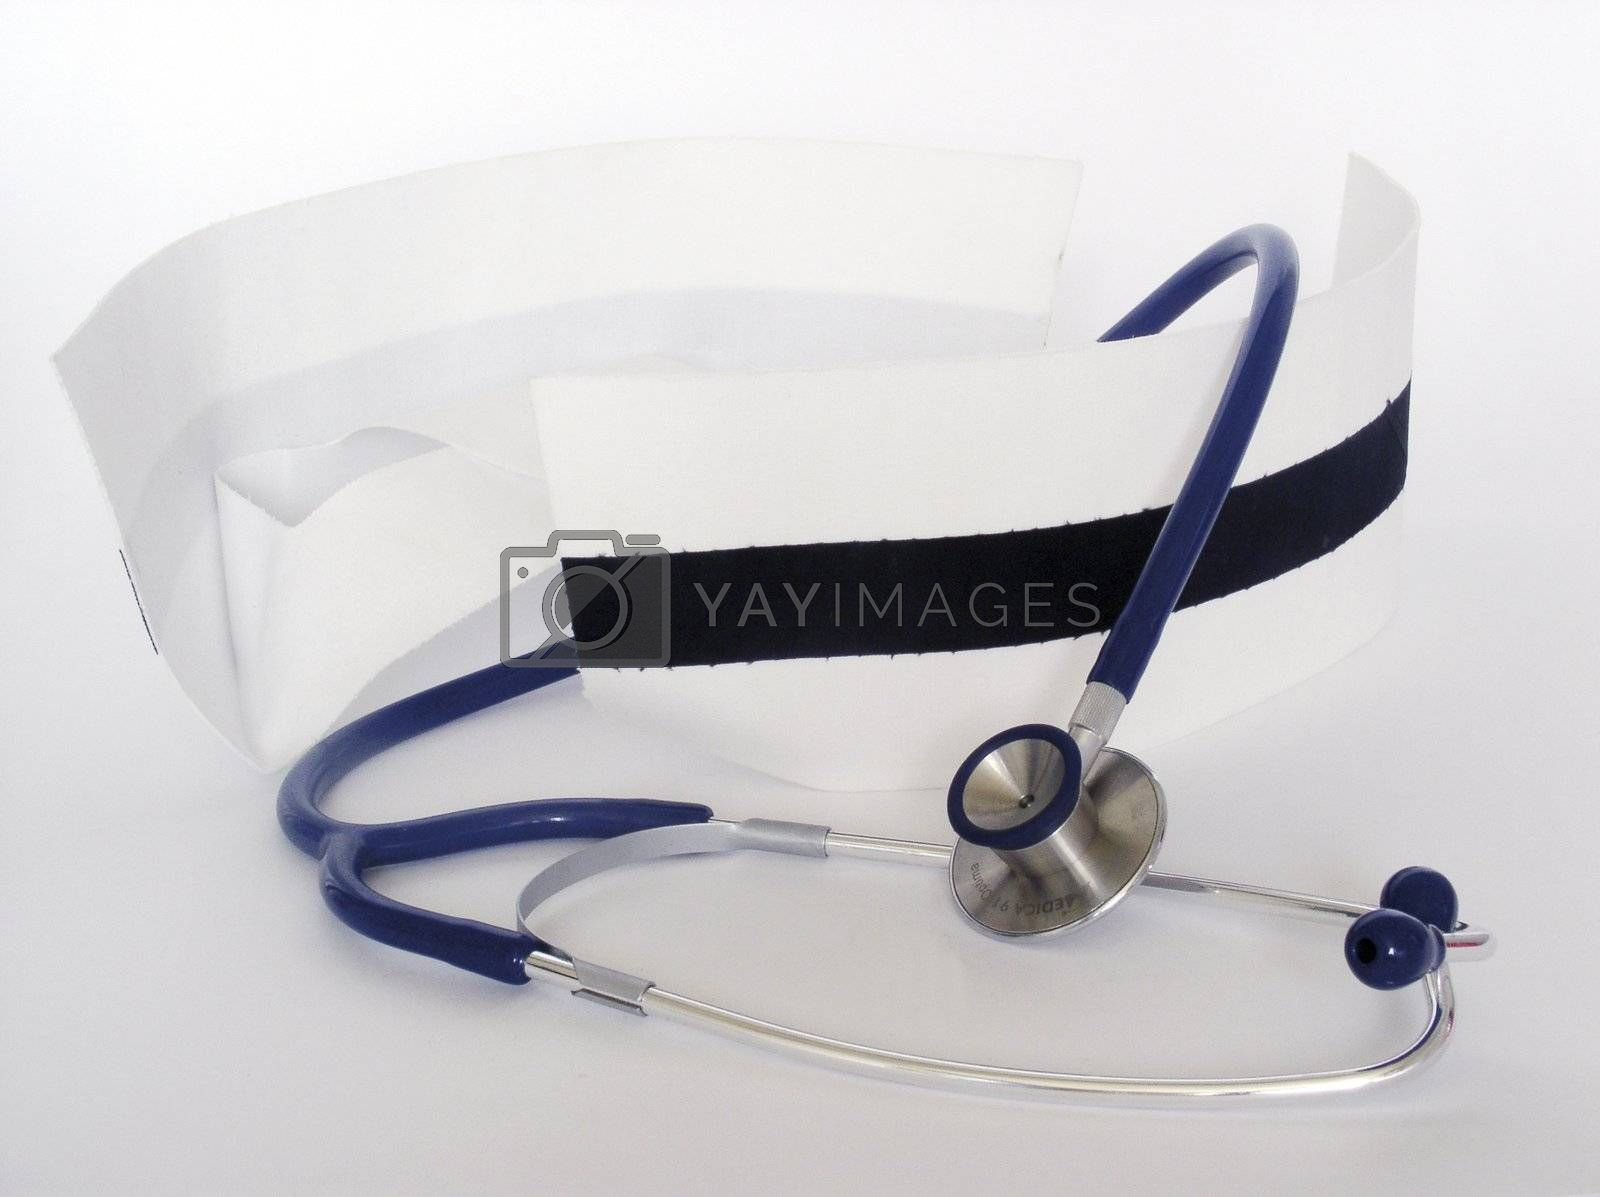 Royalty free image of nurse caps and stethoscope by kapp